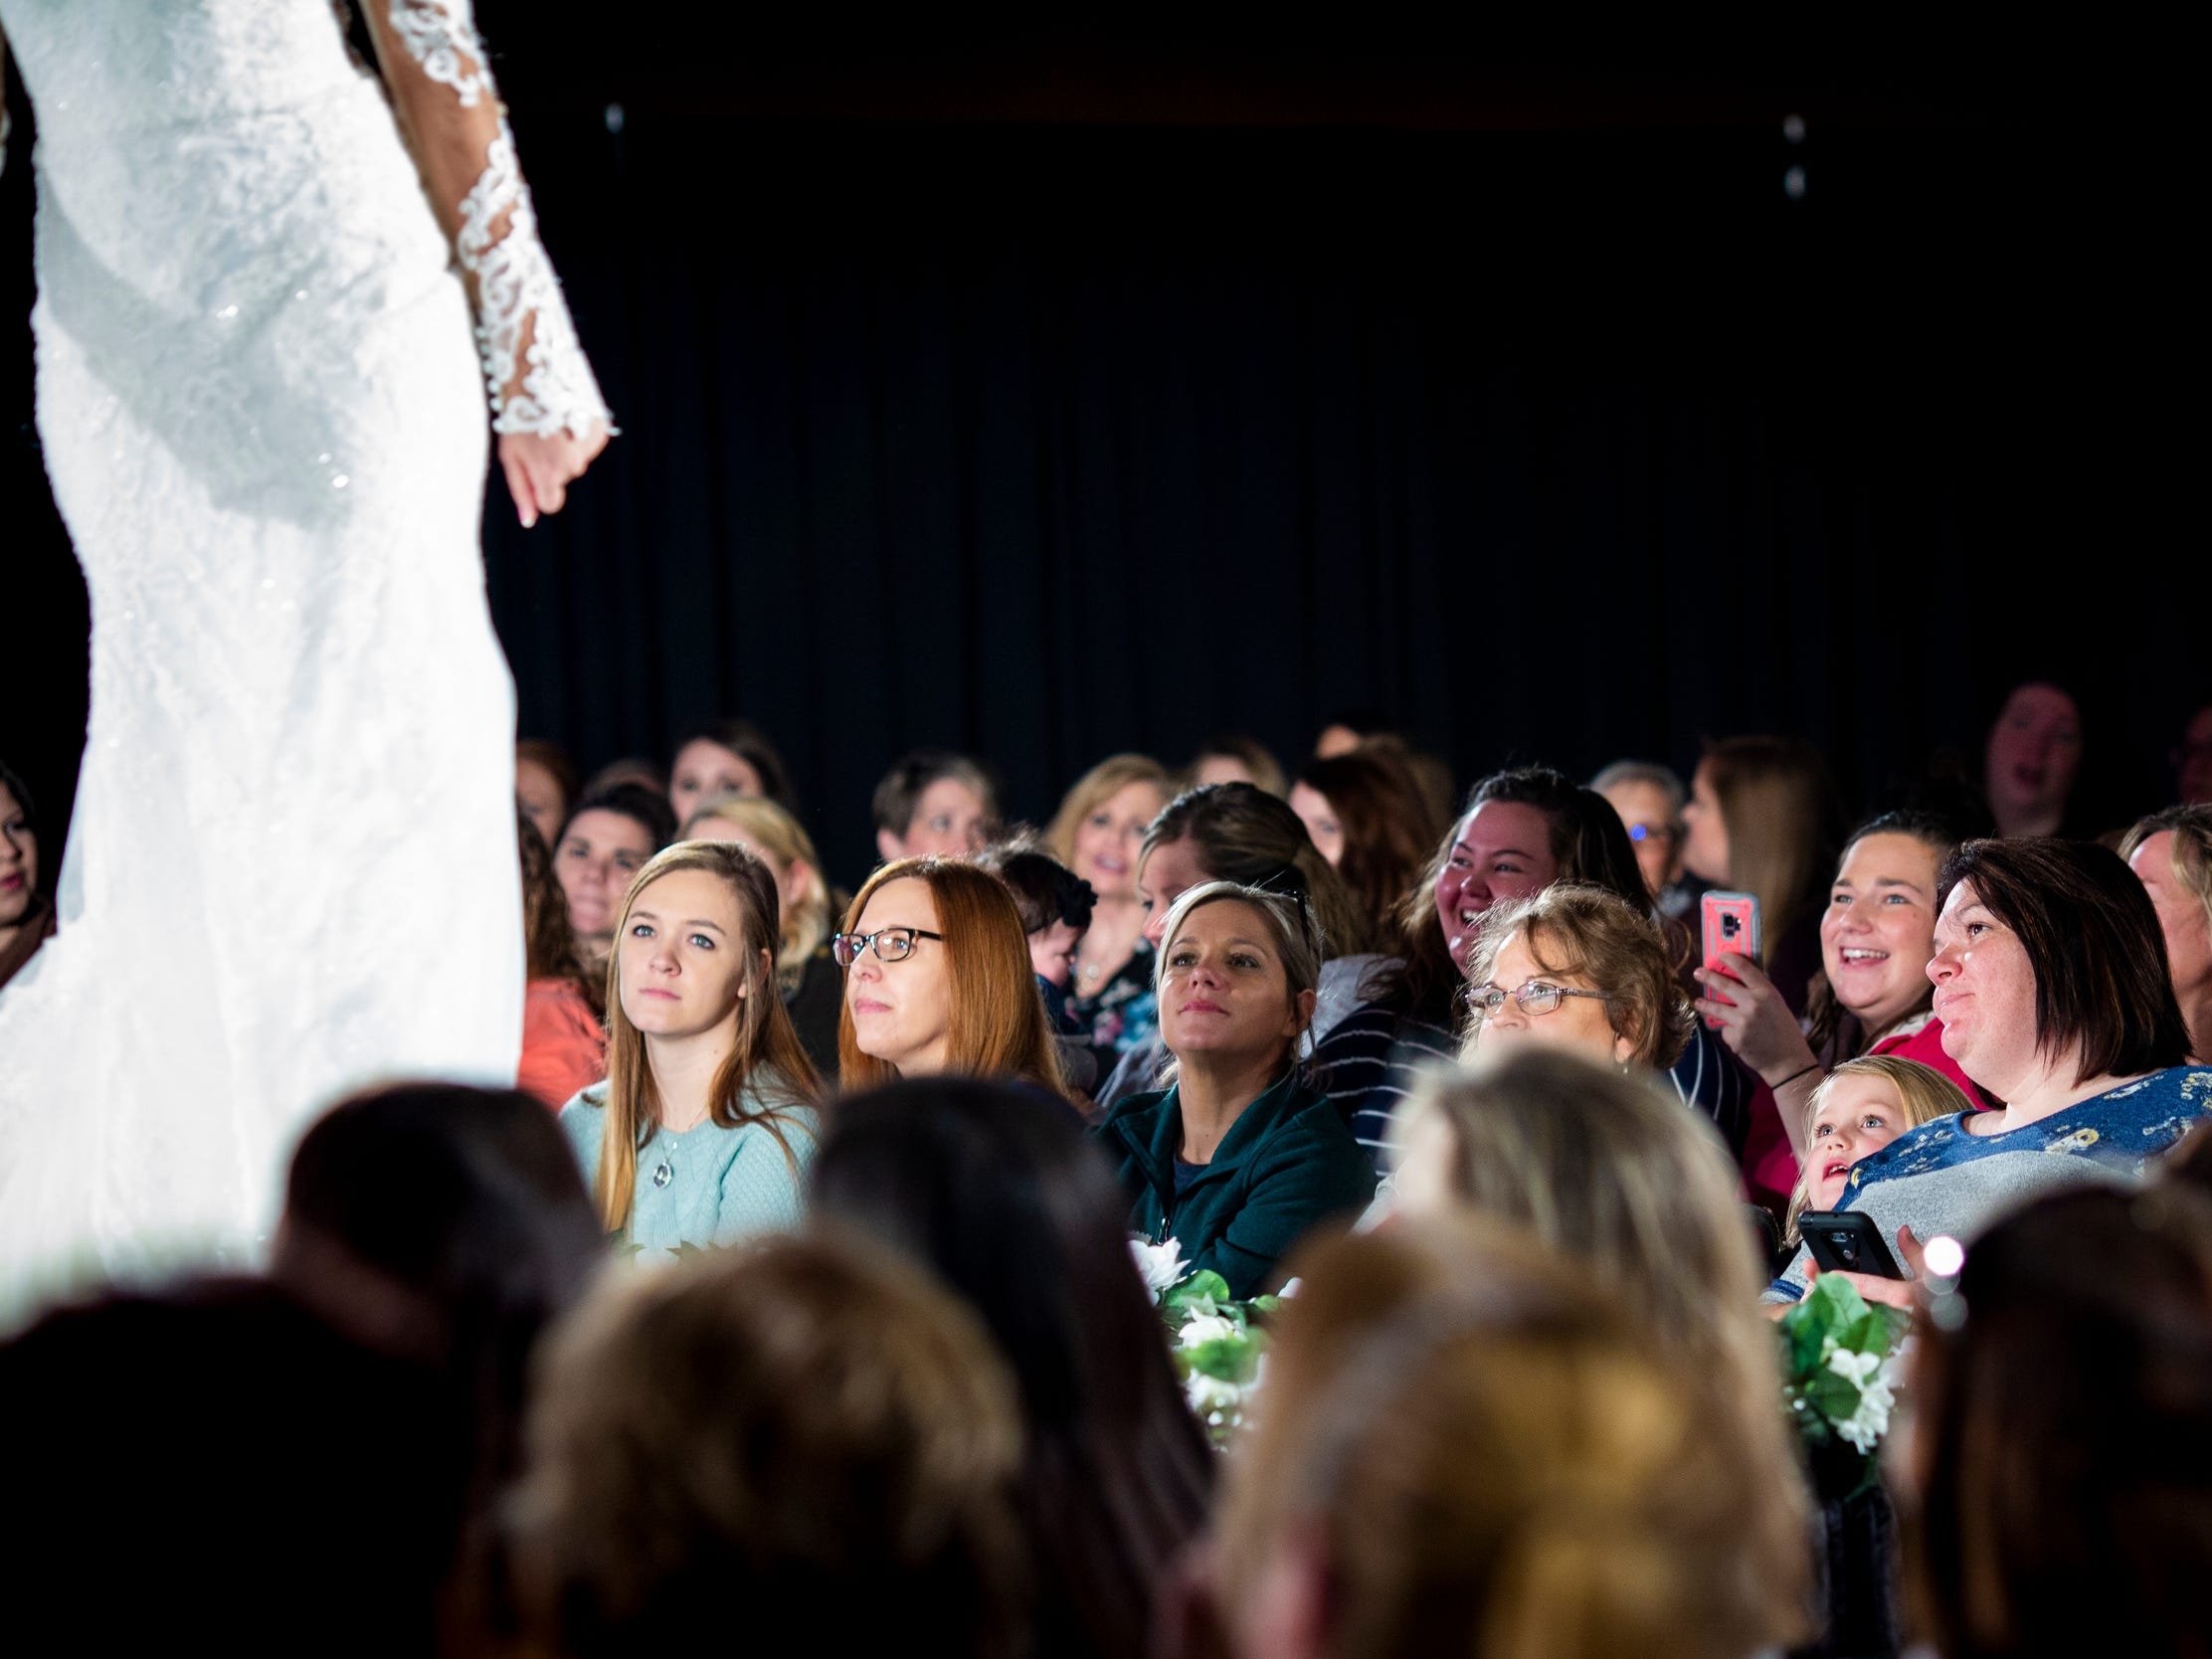 Hundreds of spectators watch the fashion show at the Wendy's Bridal Show at the Duke Energy Convention Center Saturday, January 5, 2019 in Downtown Cincinnati.